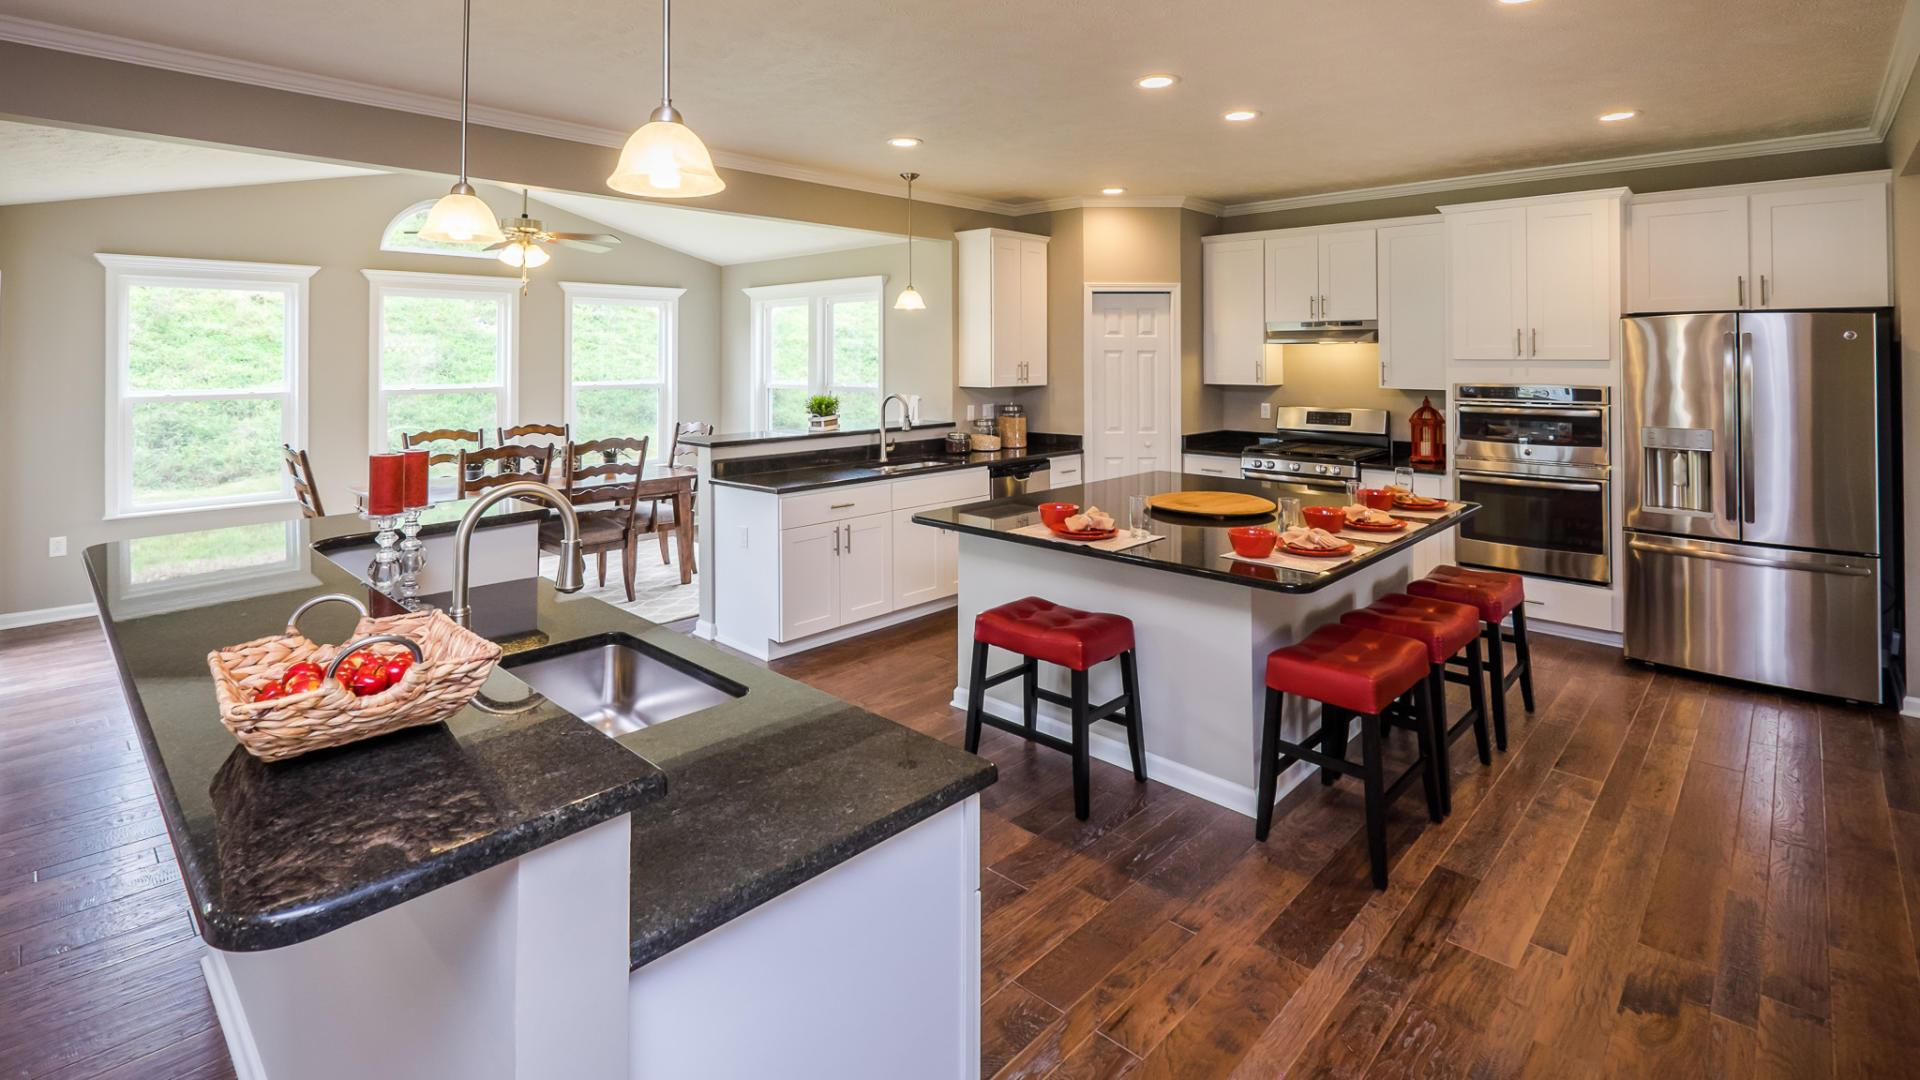 Kitchen featured in the Tucson By Maronda Homes in Pittsburgh, PA